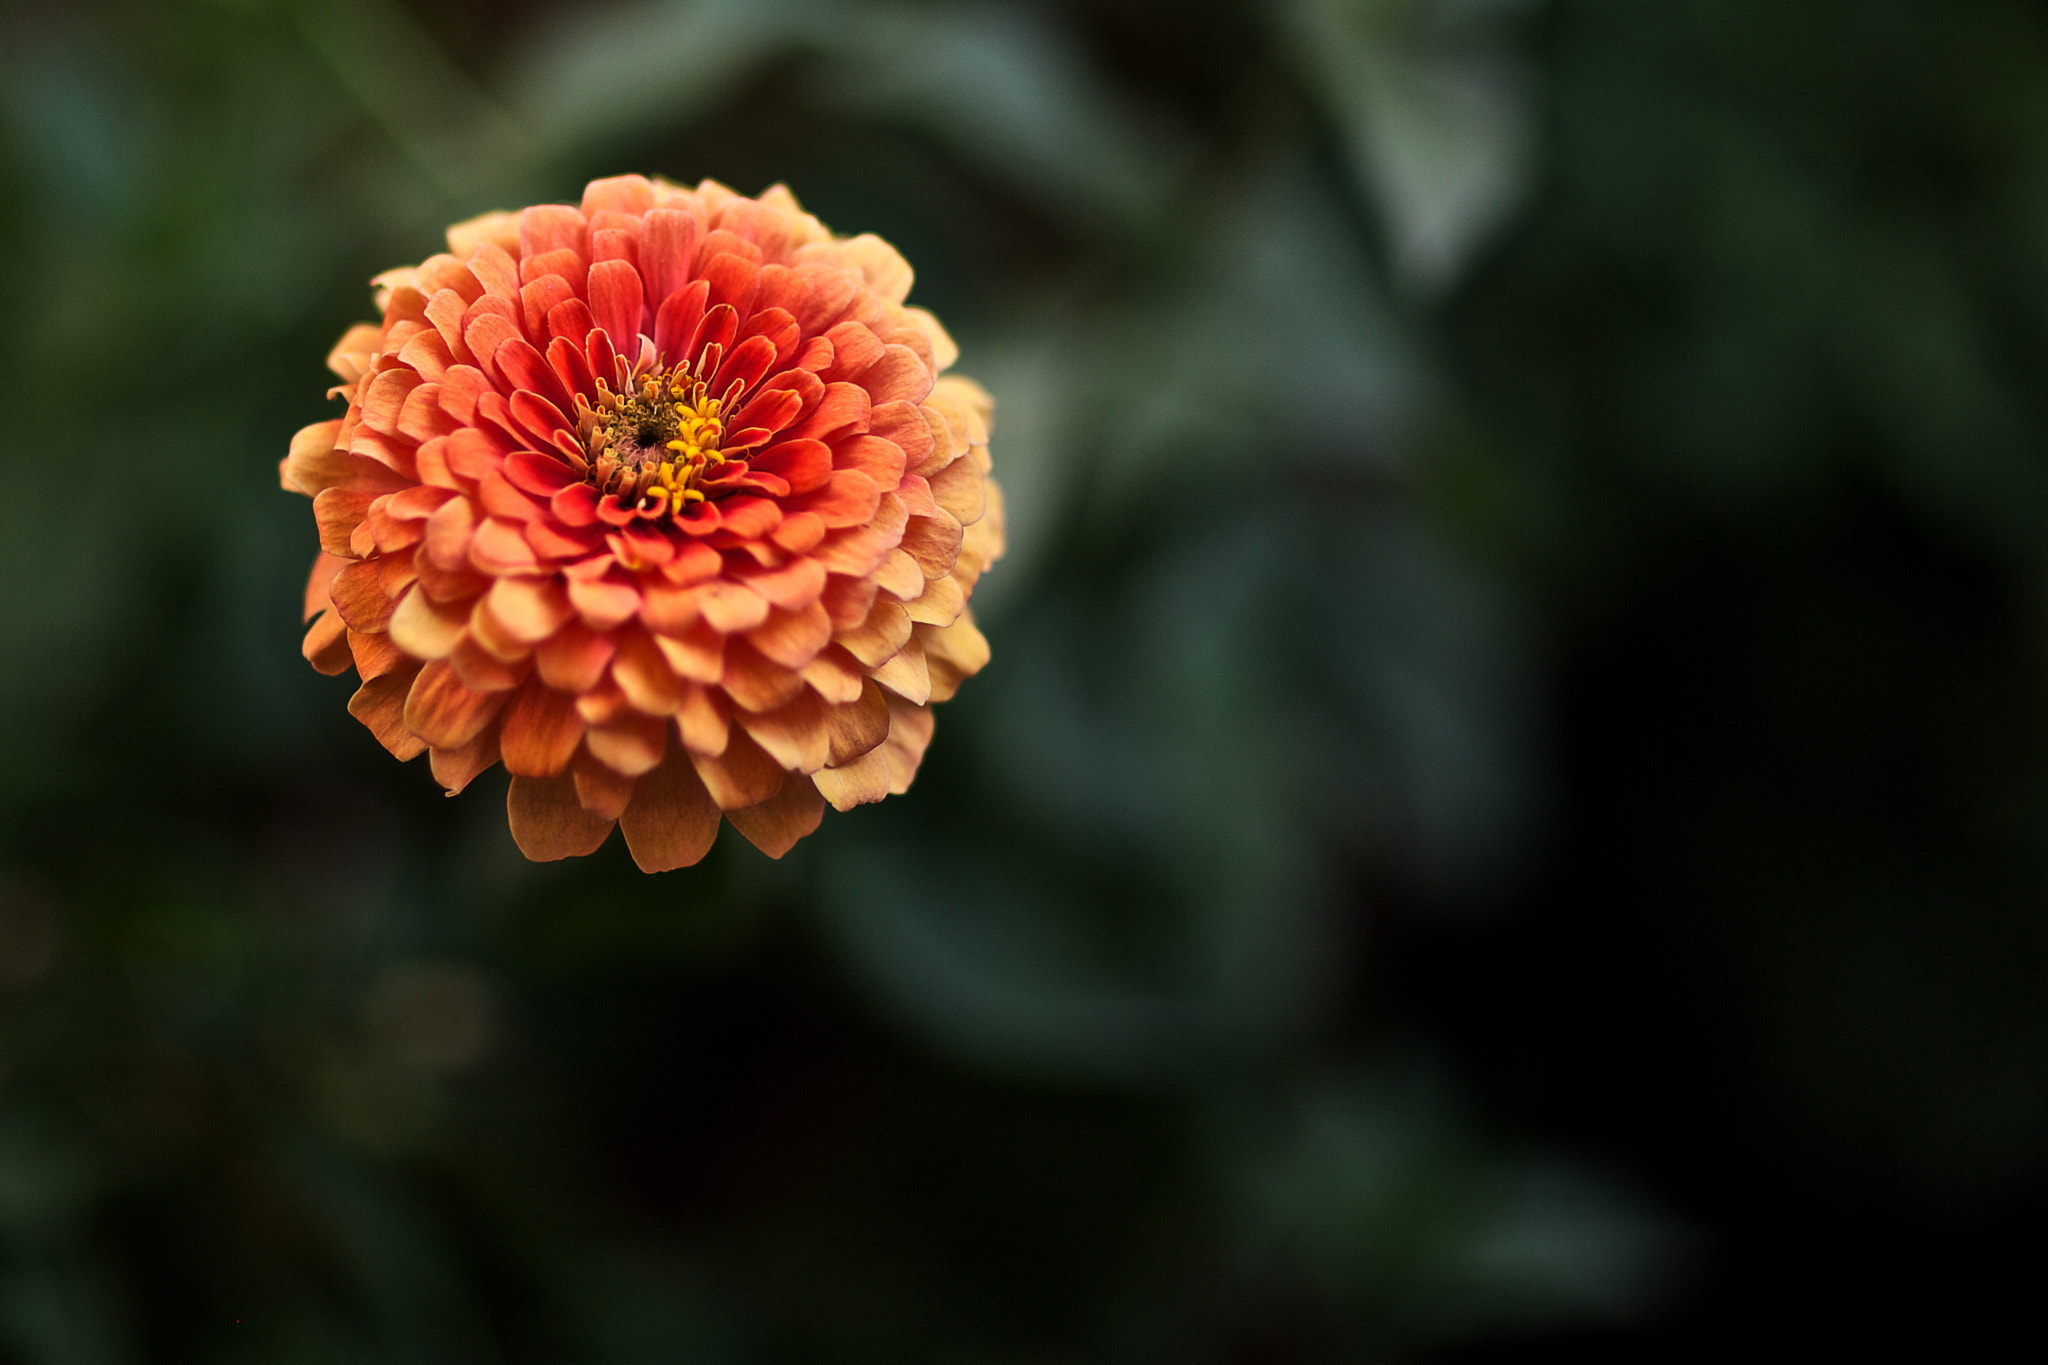 Photograph Floating Flower by Rahul Matthan on 500px